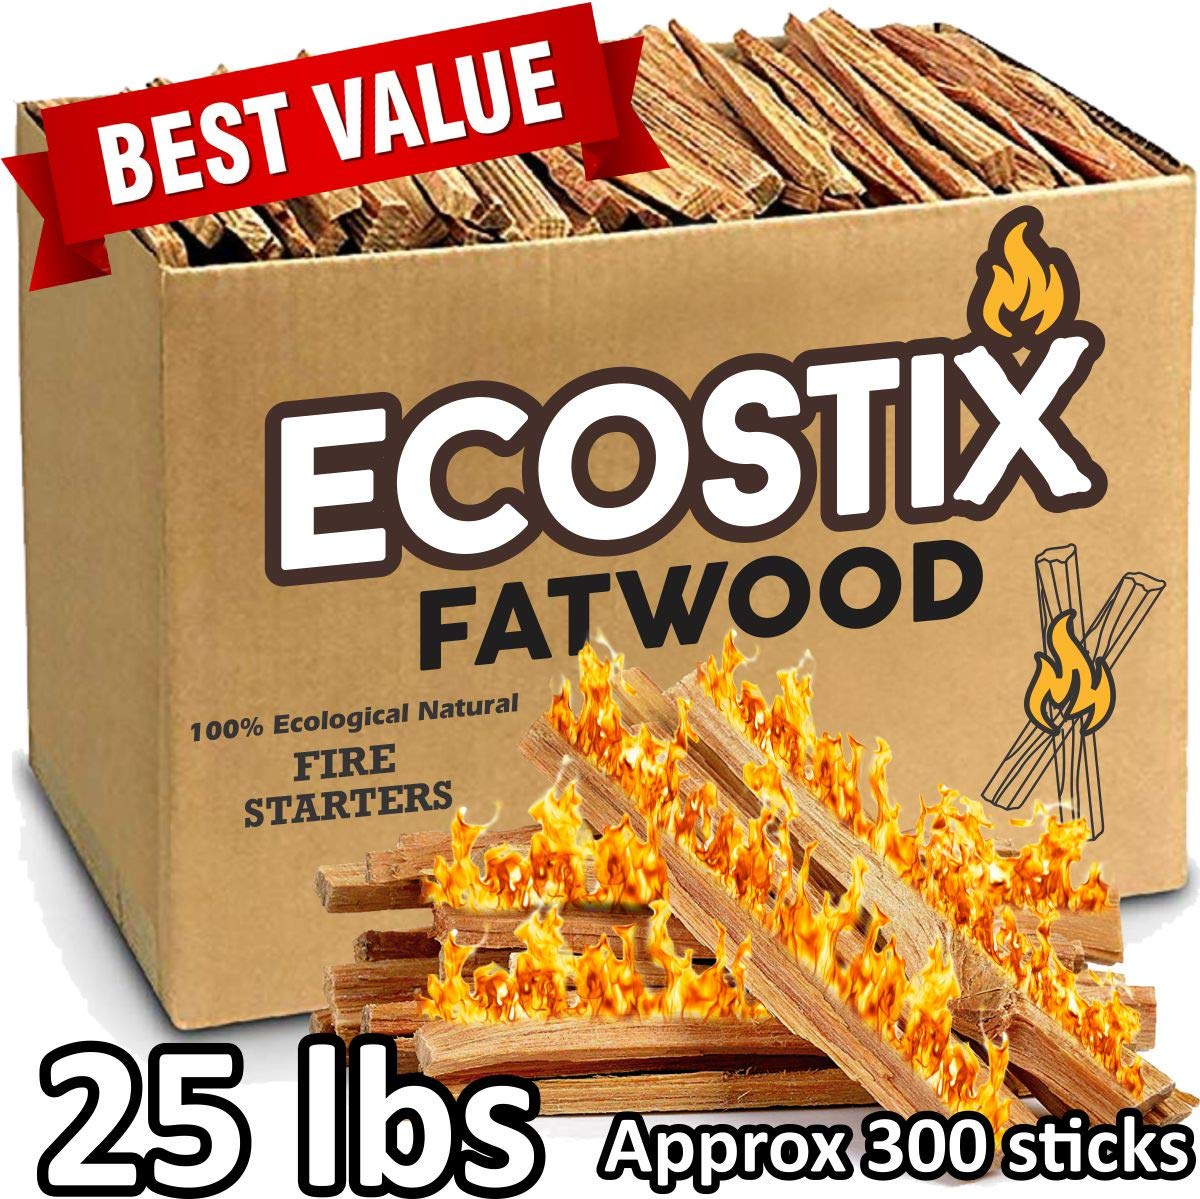 EasyGoProducts Approx. 300 Eco-Stix Fatwood Fire Starter Kindling Firewood Sticks Wood Stoves, 25 lbs by EasyGoProducts